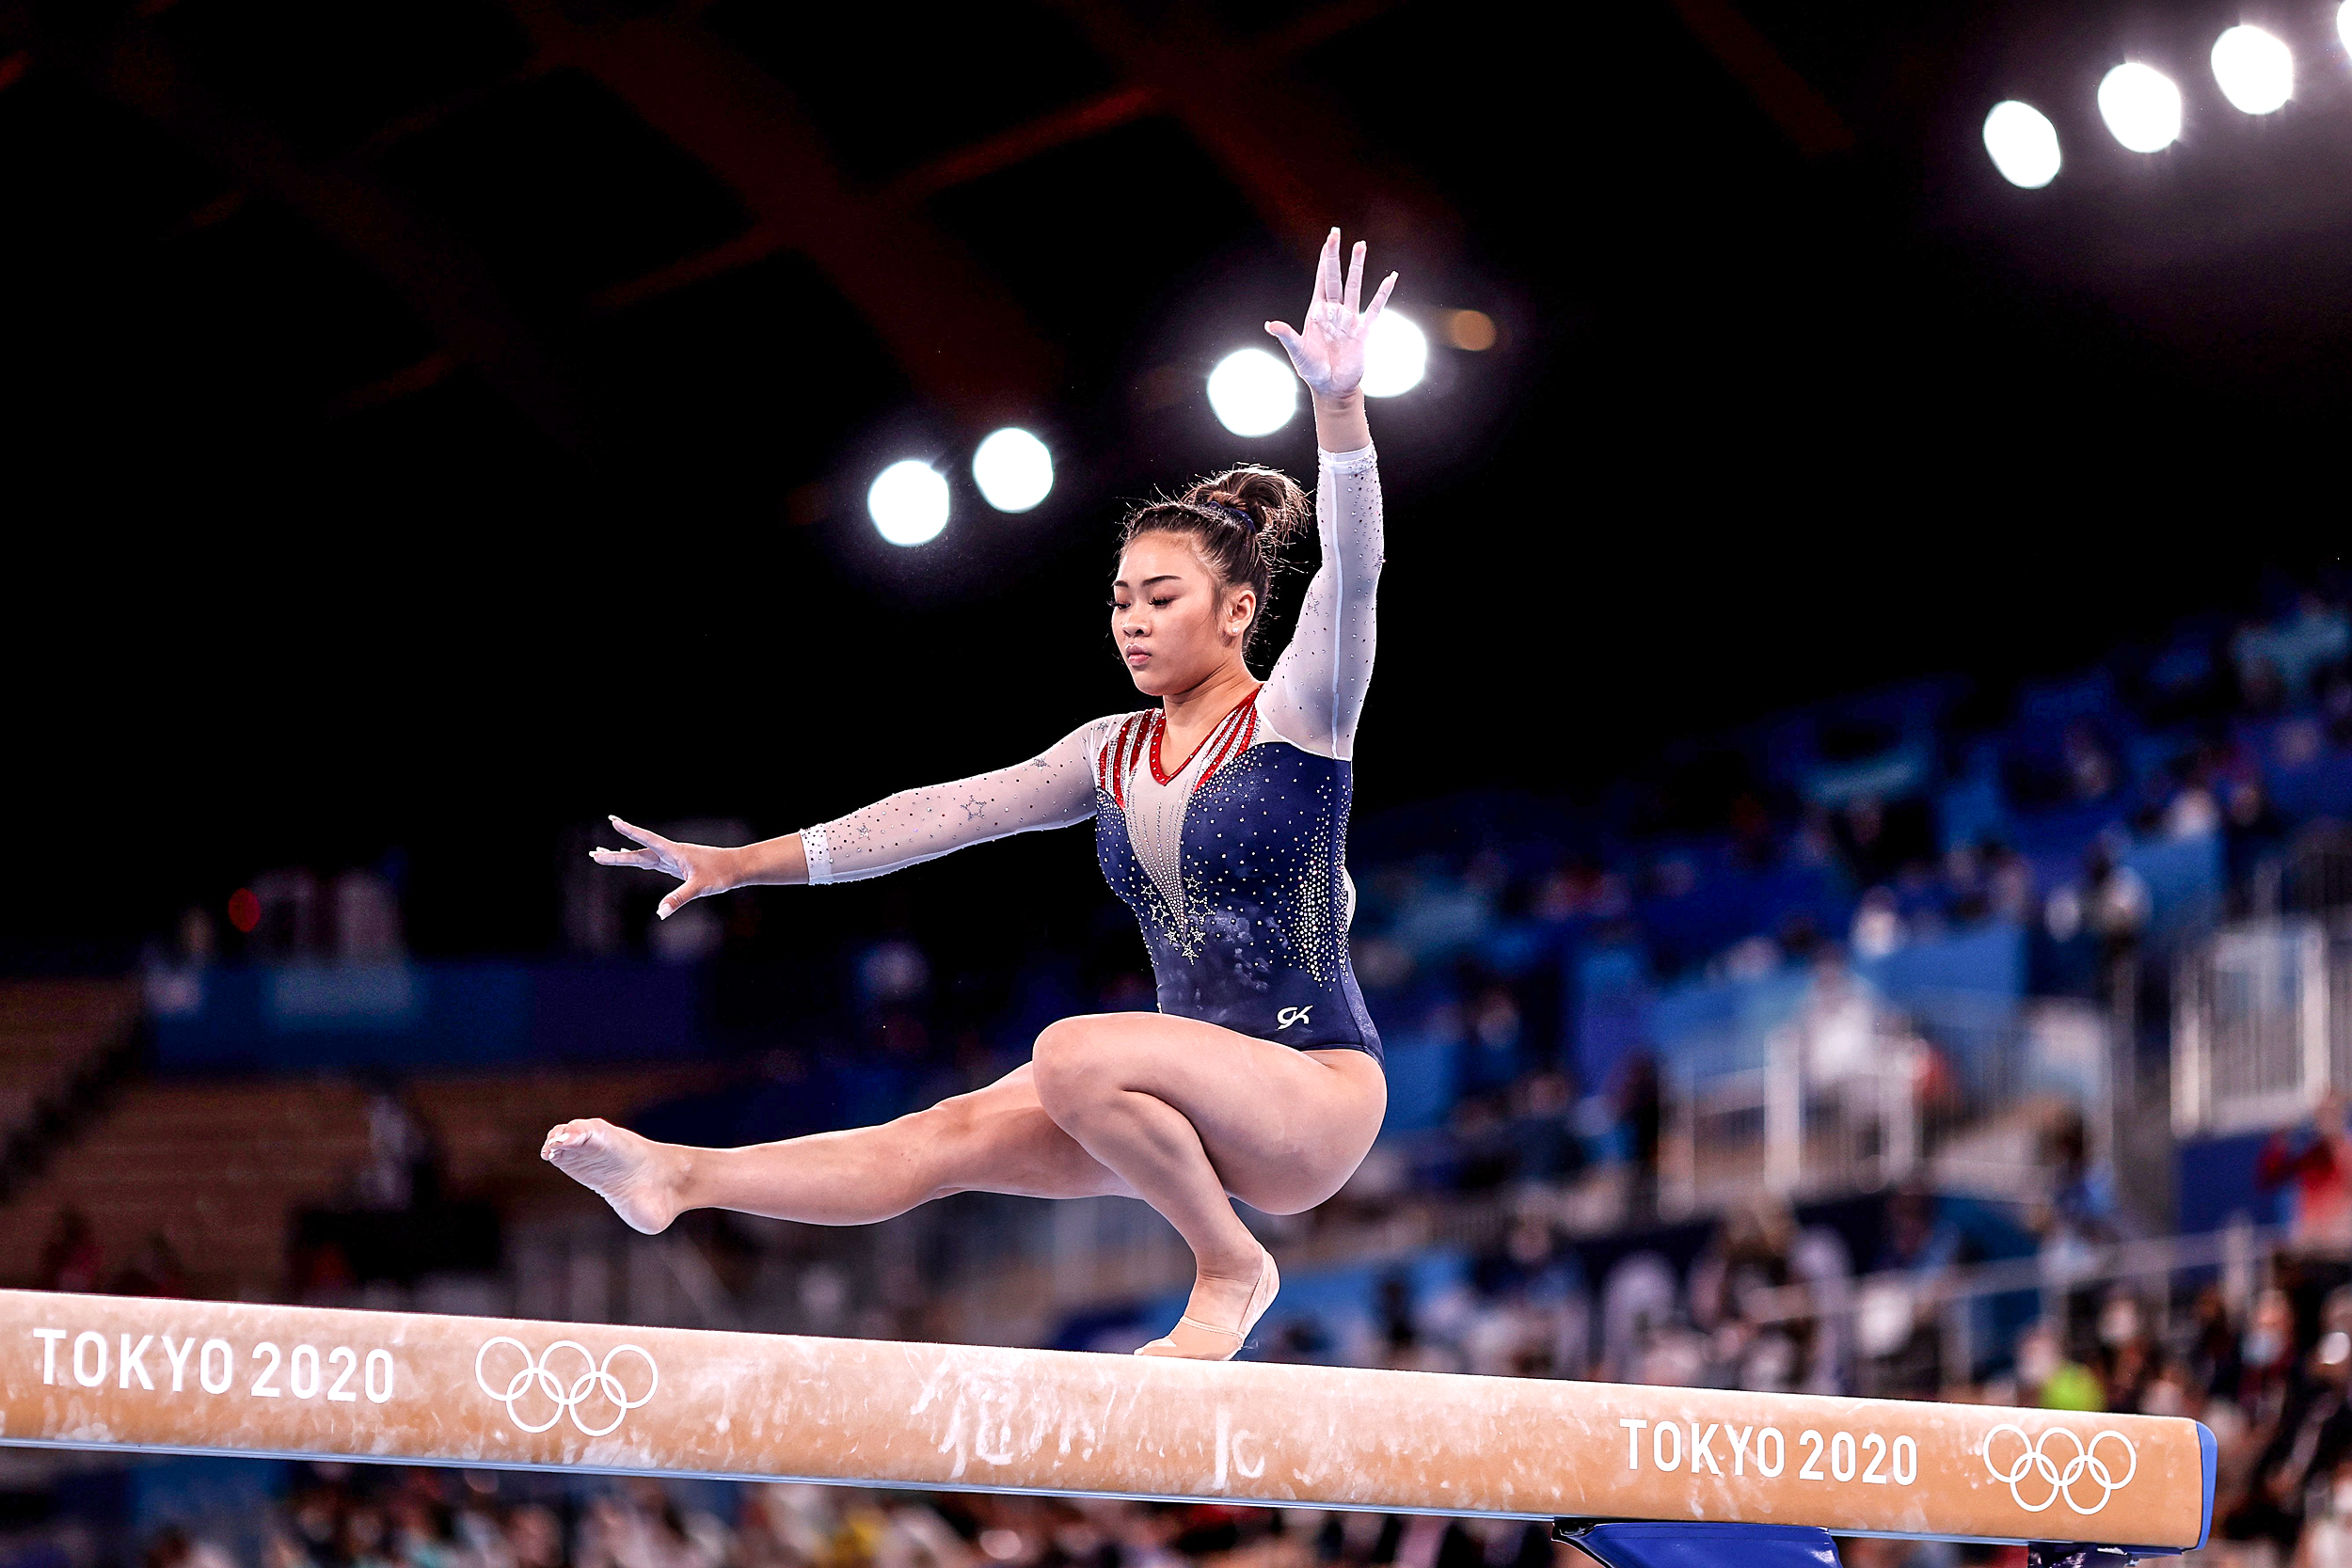 Suni Lee becomes first Asian American woman to take gold in gymnastics all-around